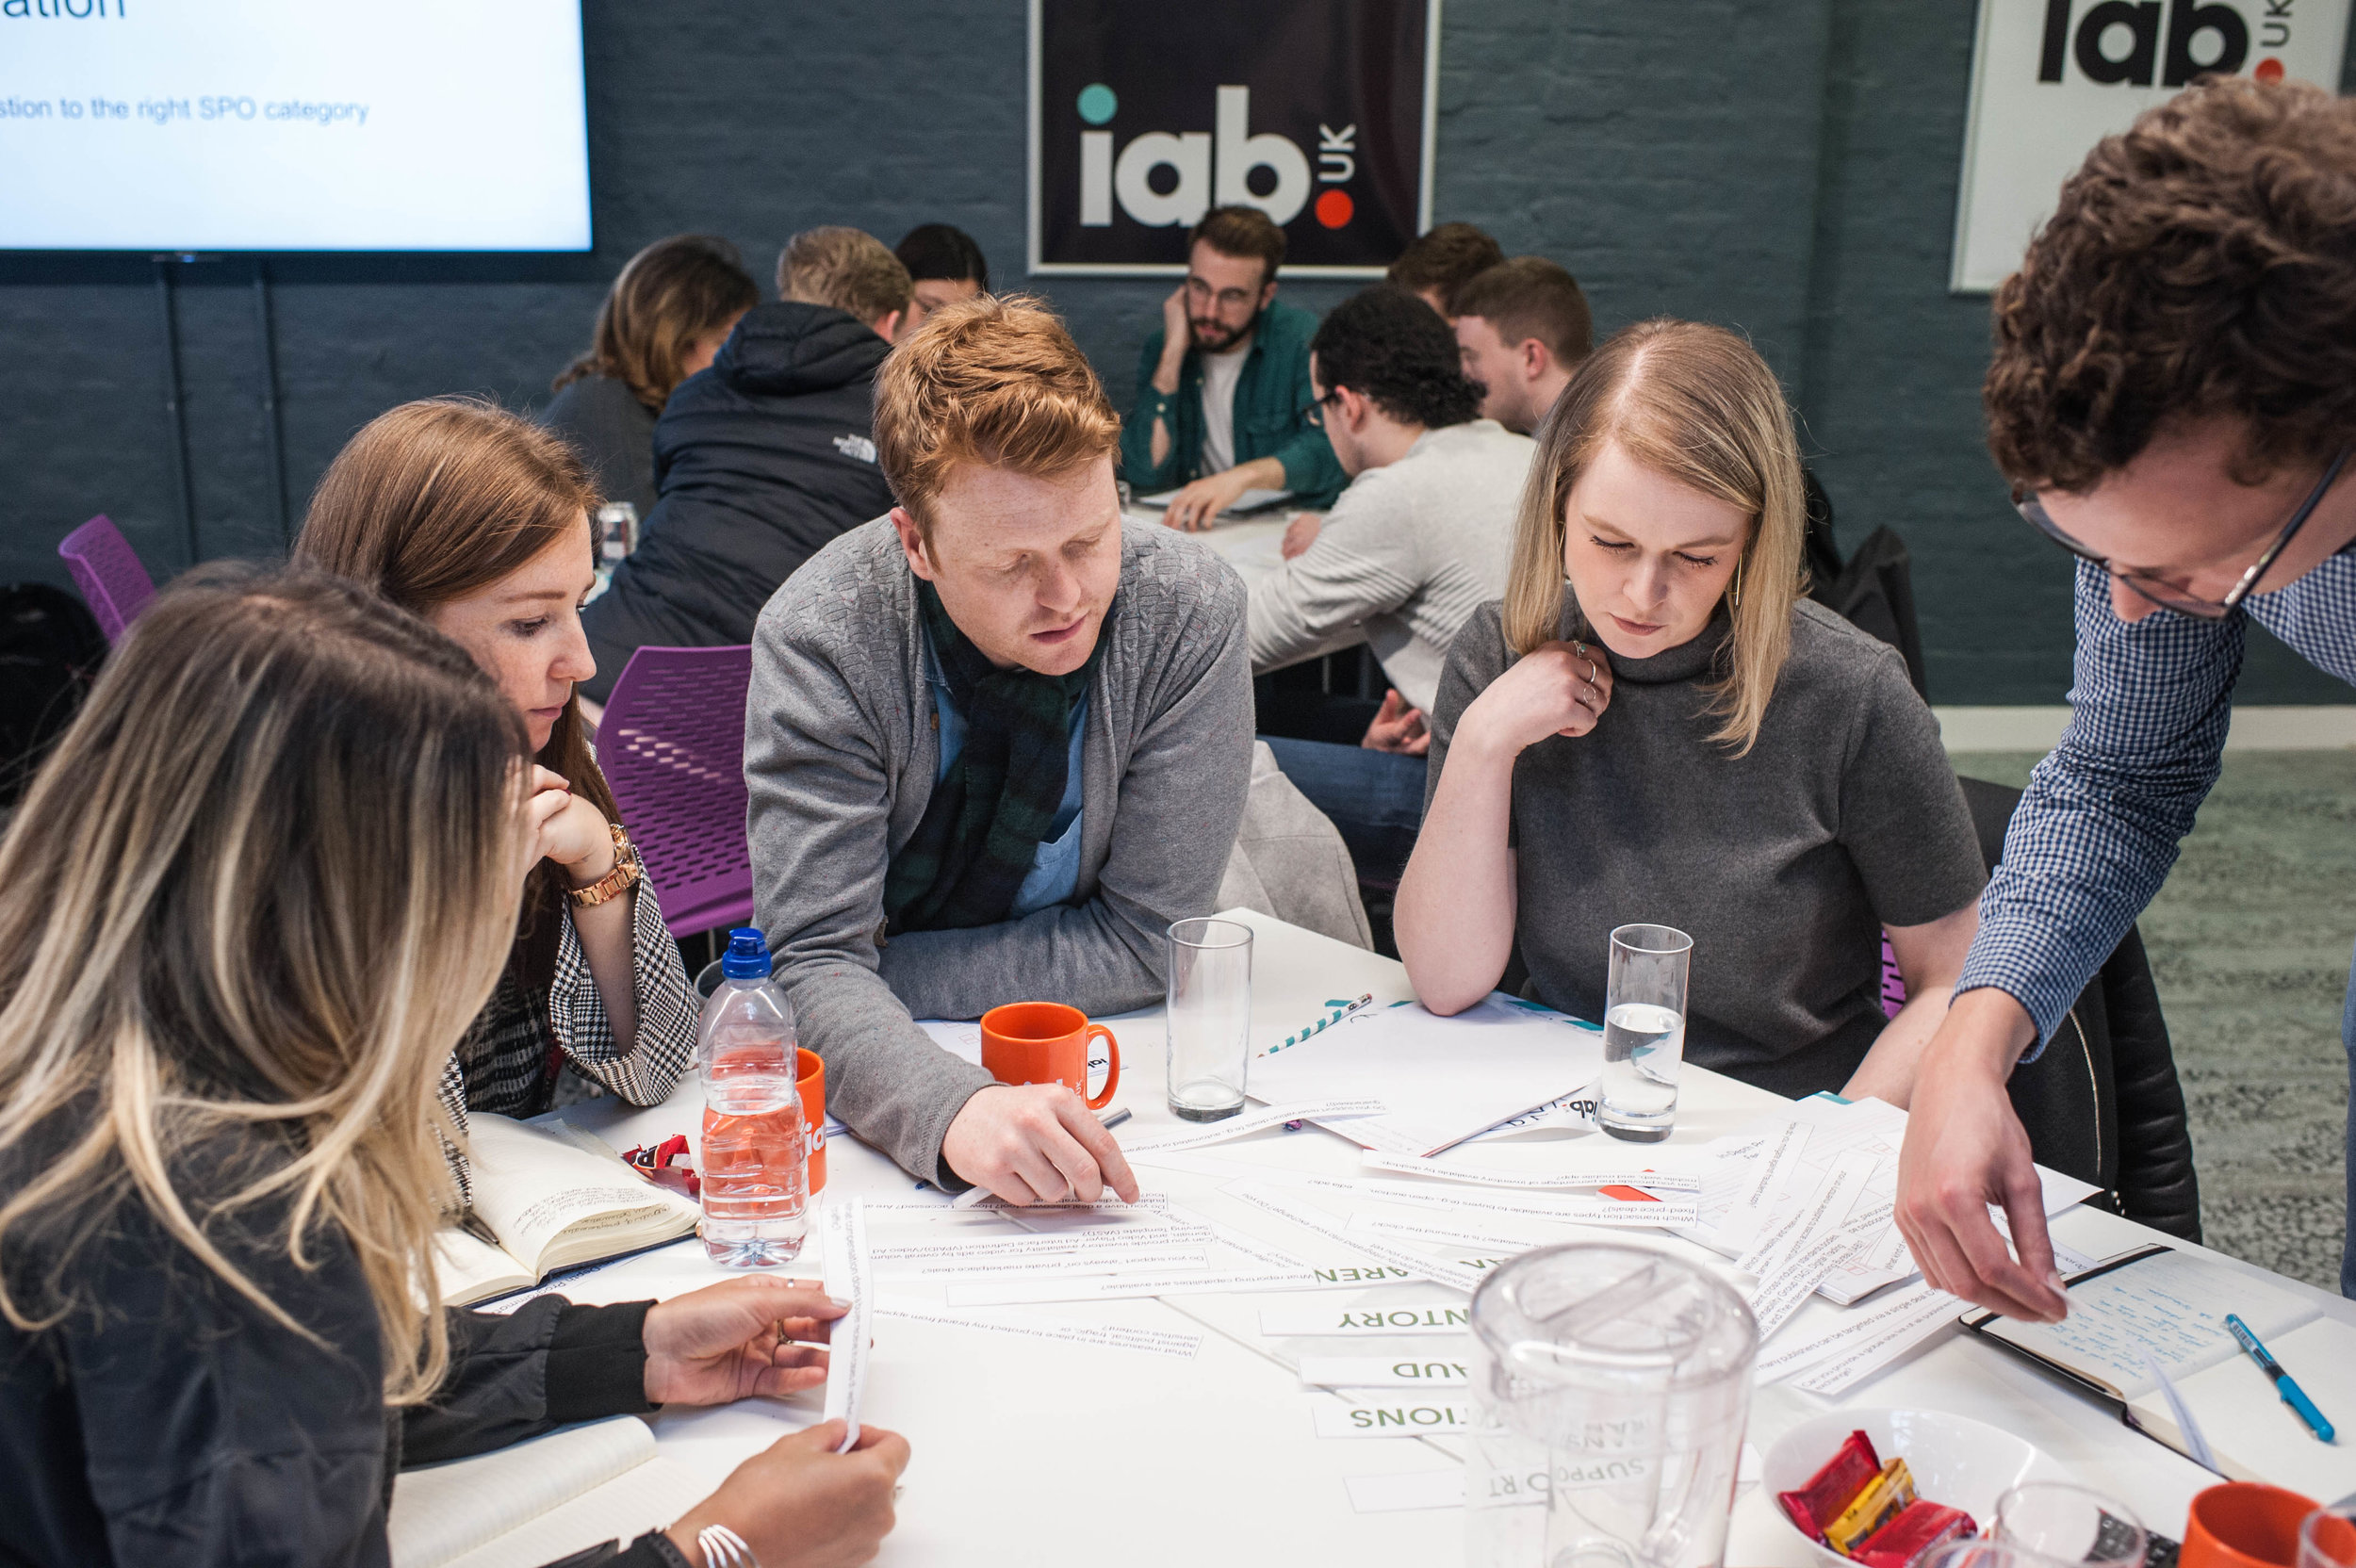 IAB Uk_Incidental Shots_SM (265 of 312).jpg